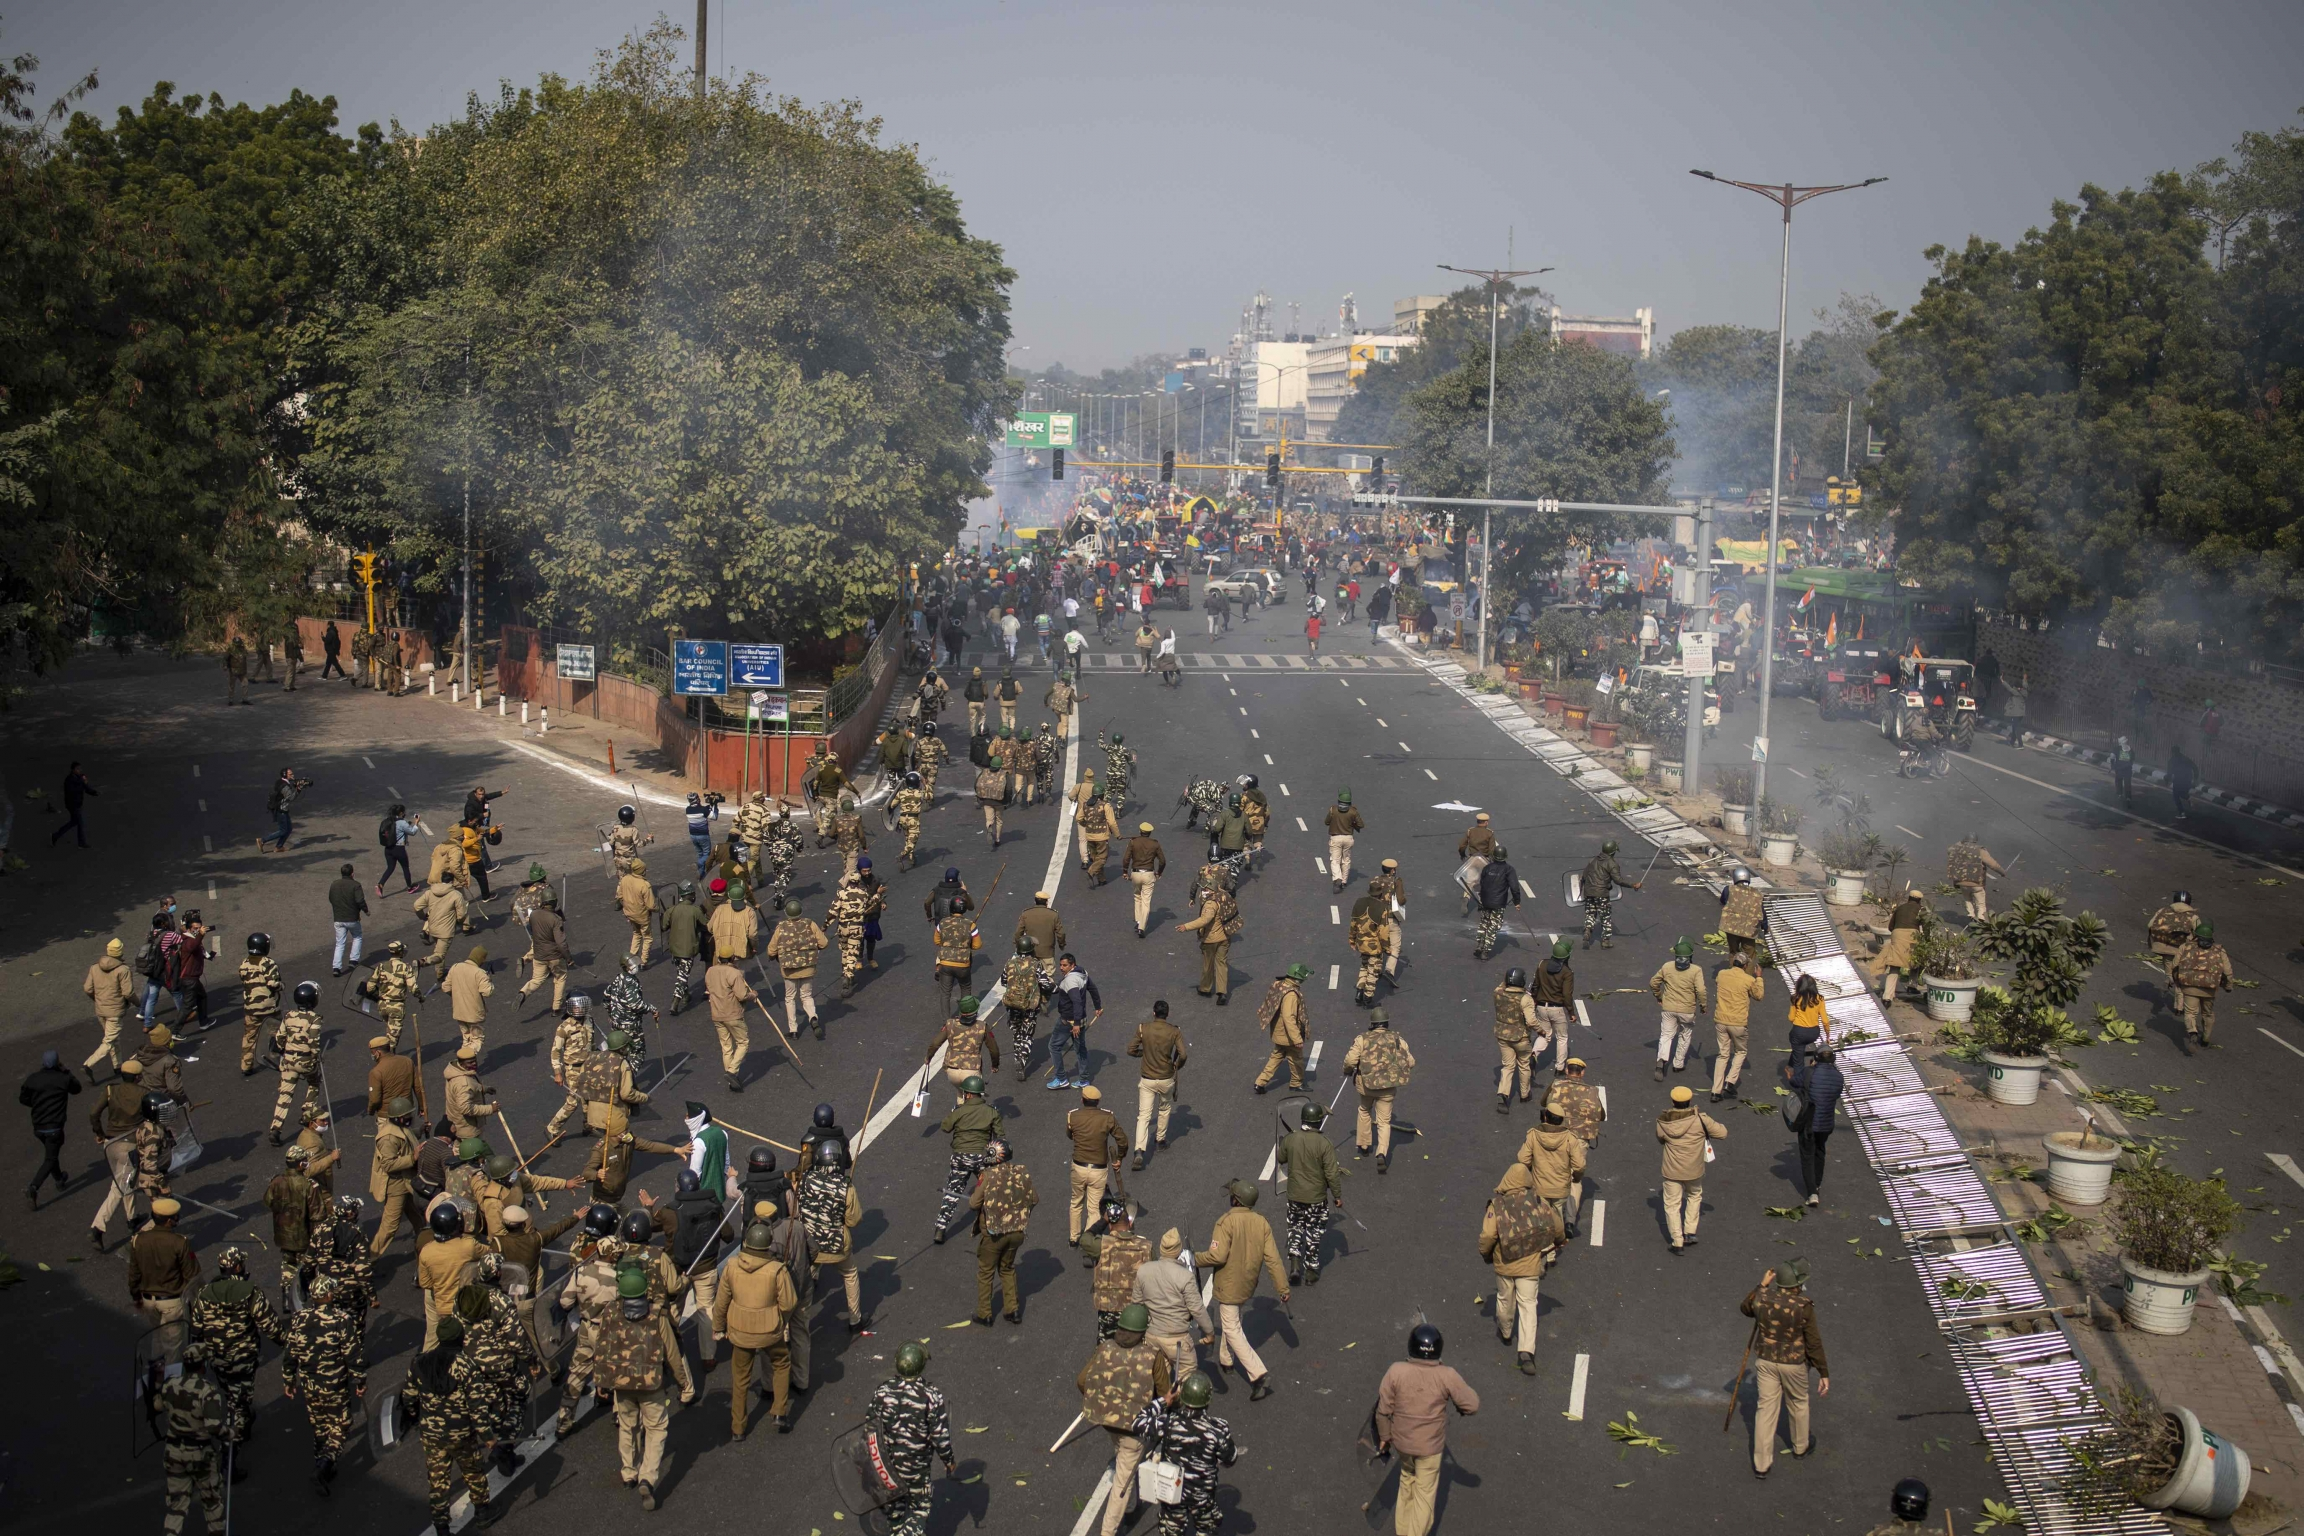 Protesters defied tear gas and stormed the historic Red Fort as India celebrated Republic Day.